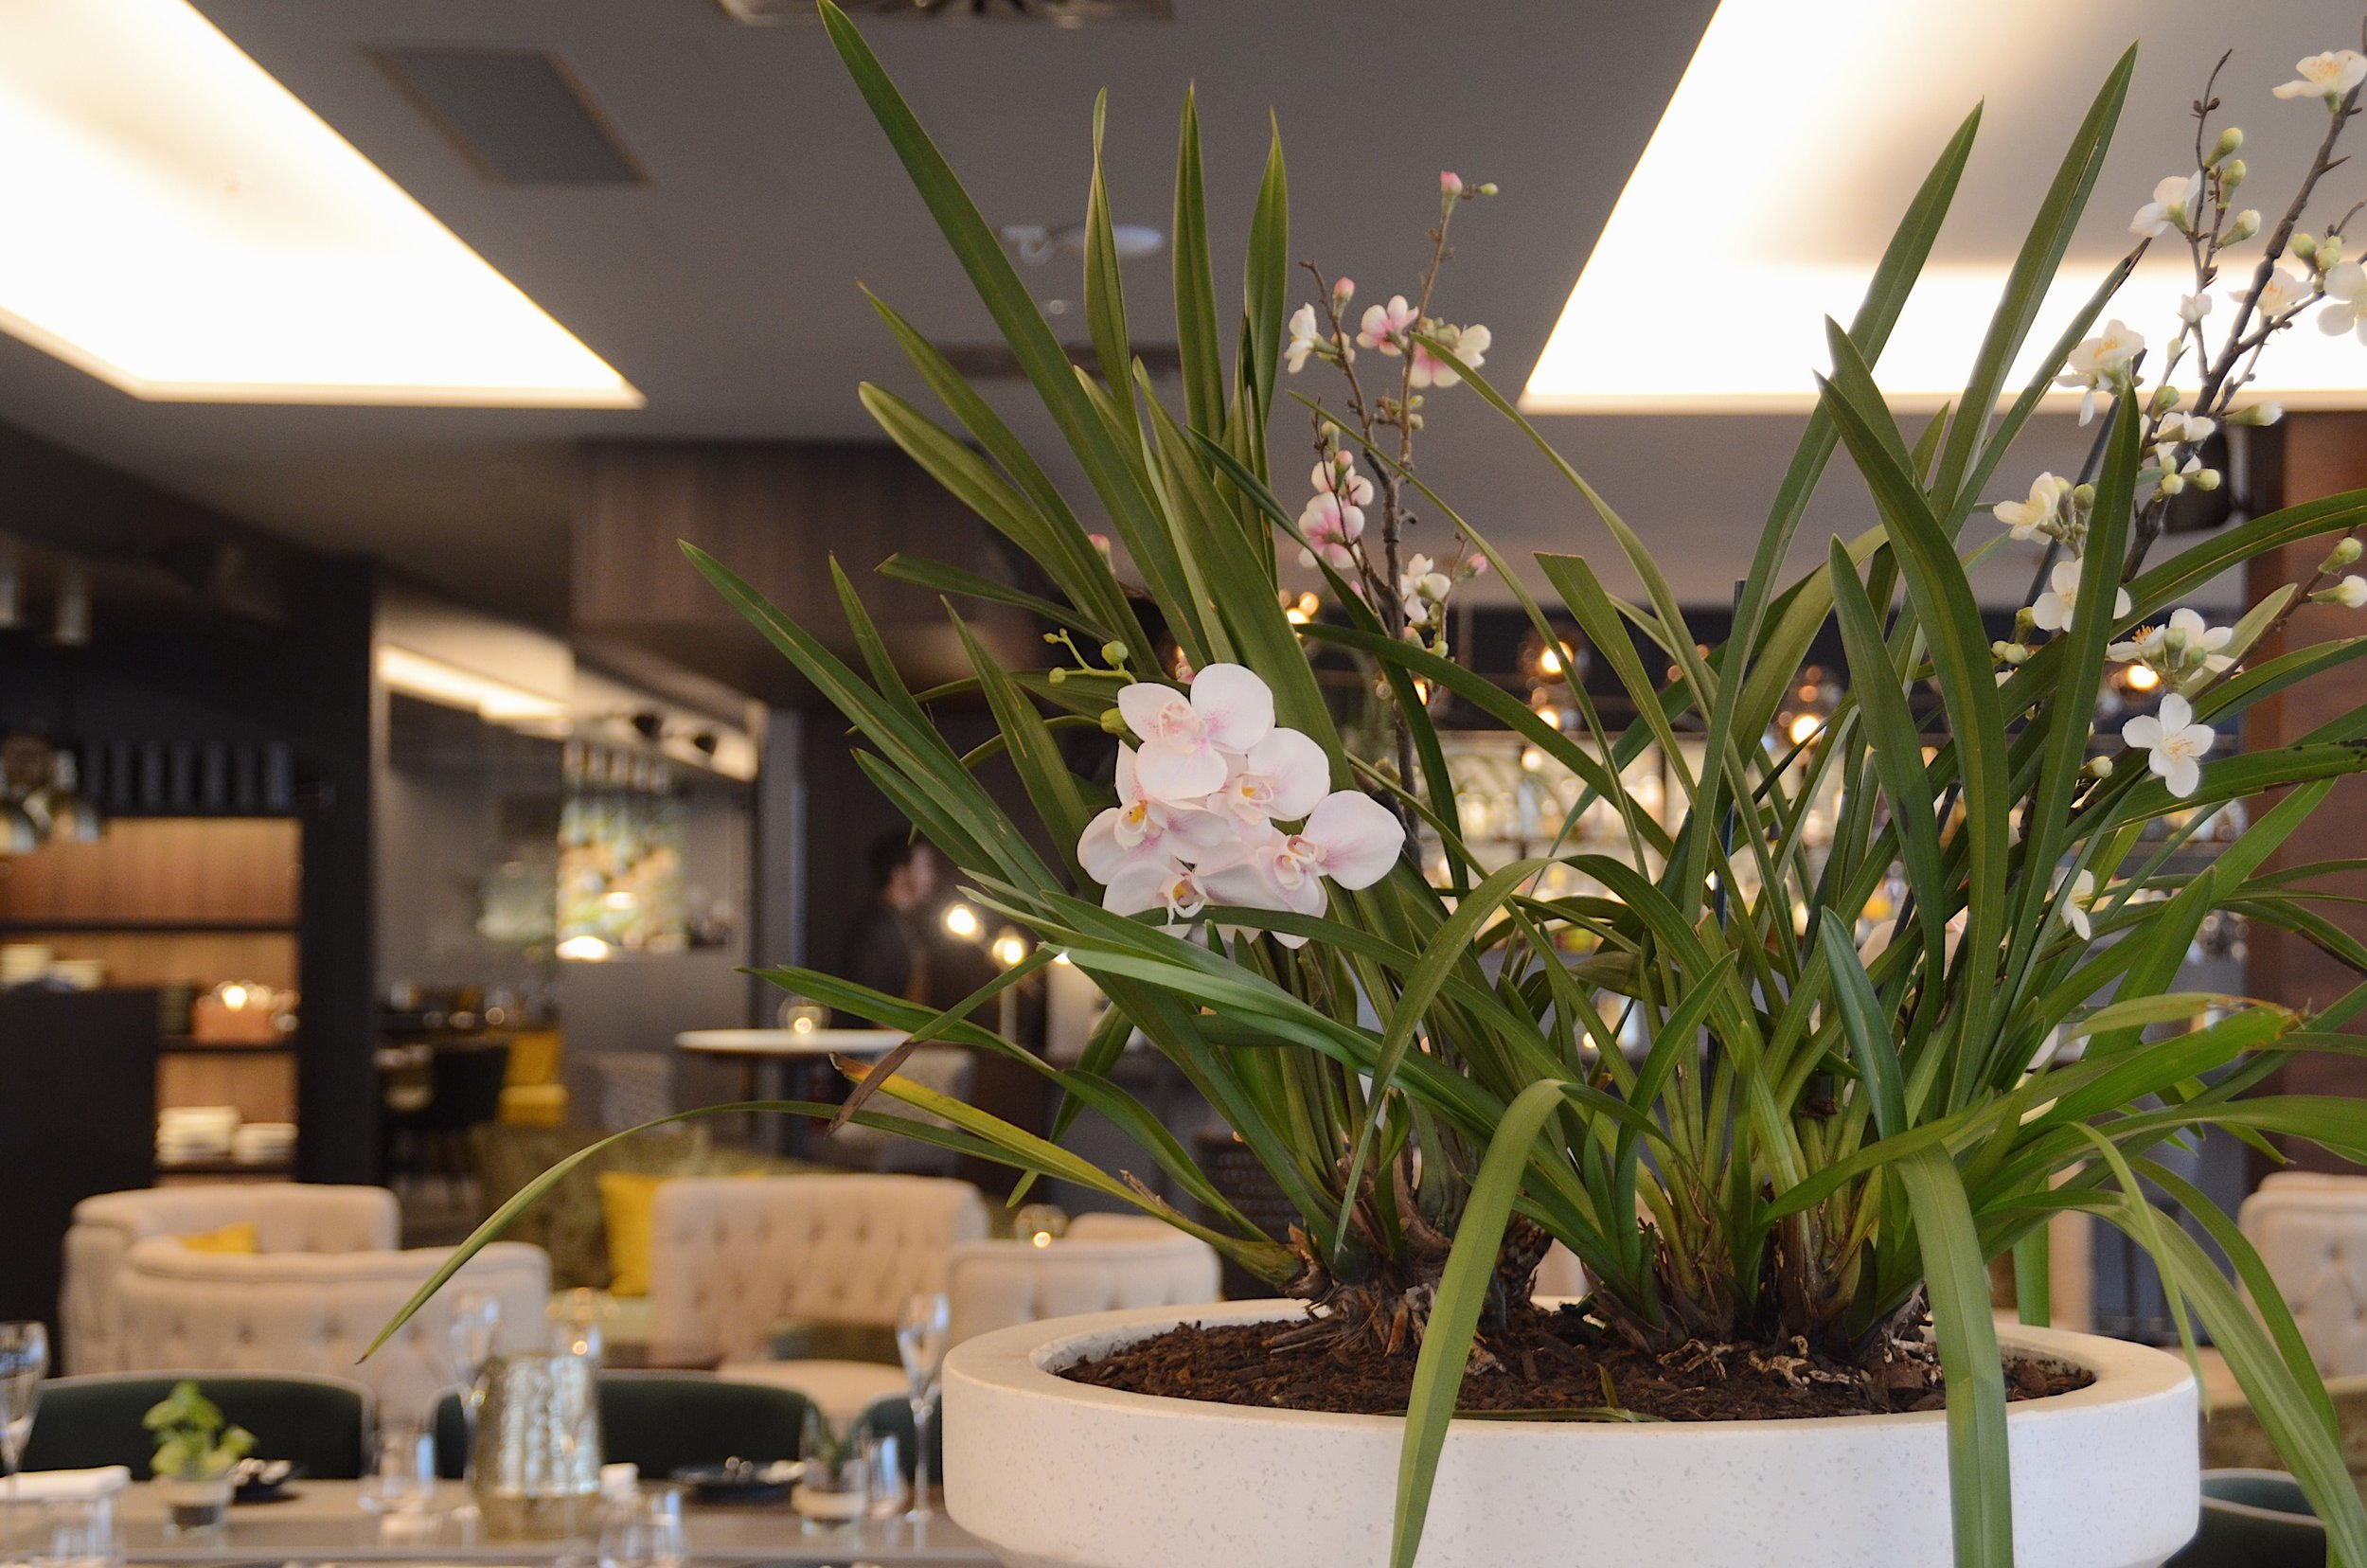 the orchid display in the centre of the restaurant